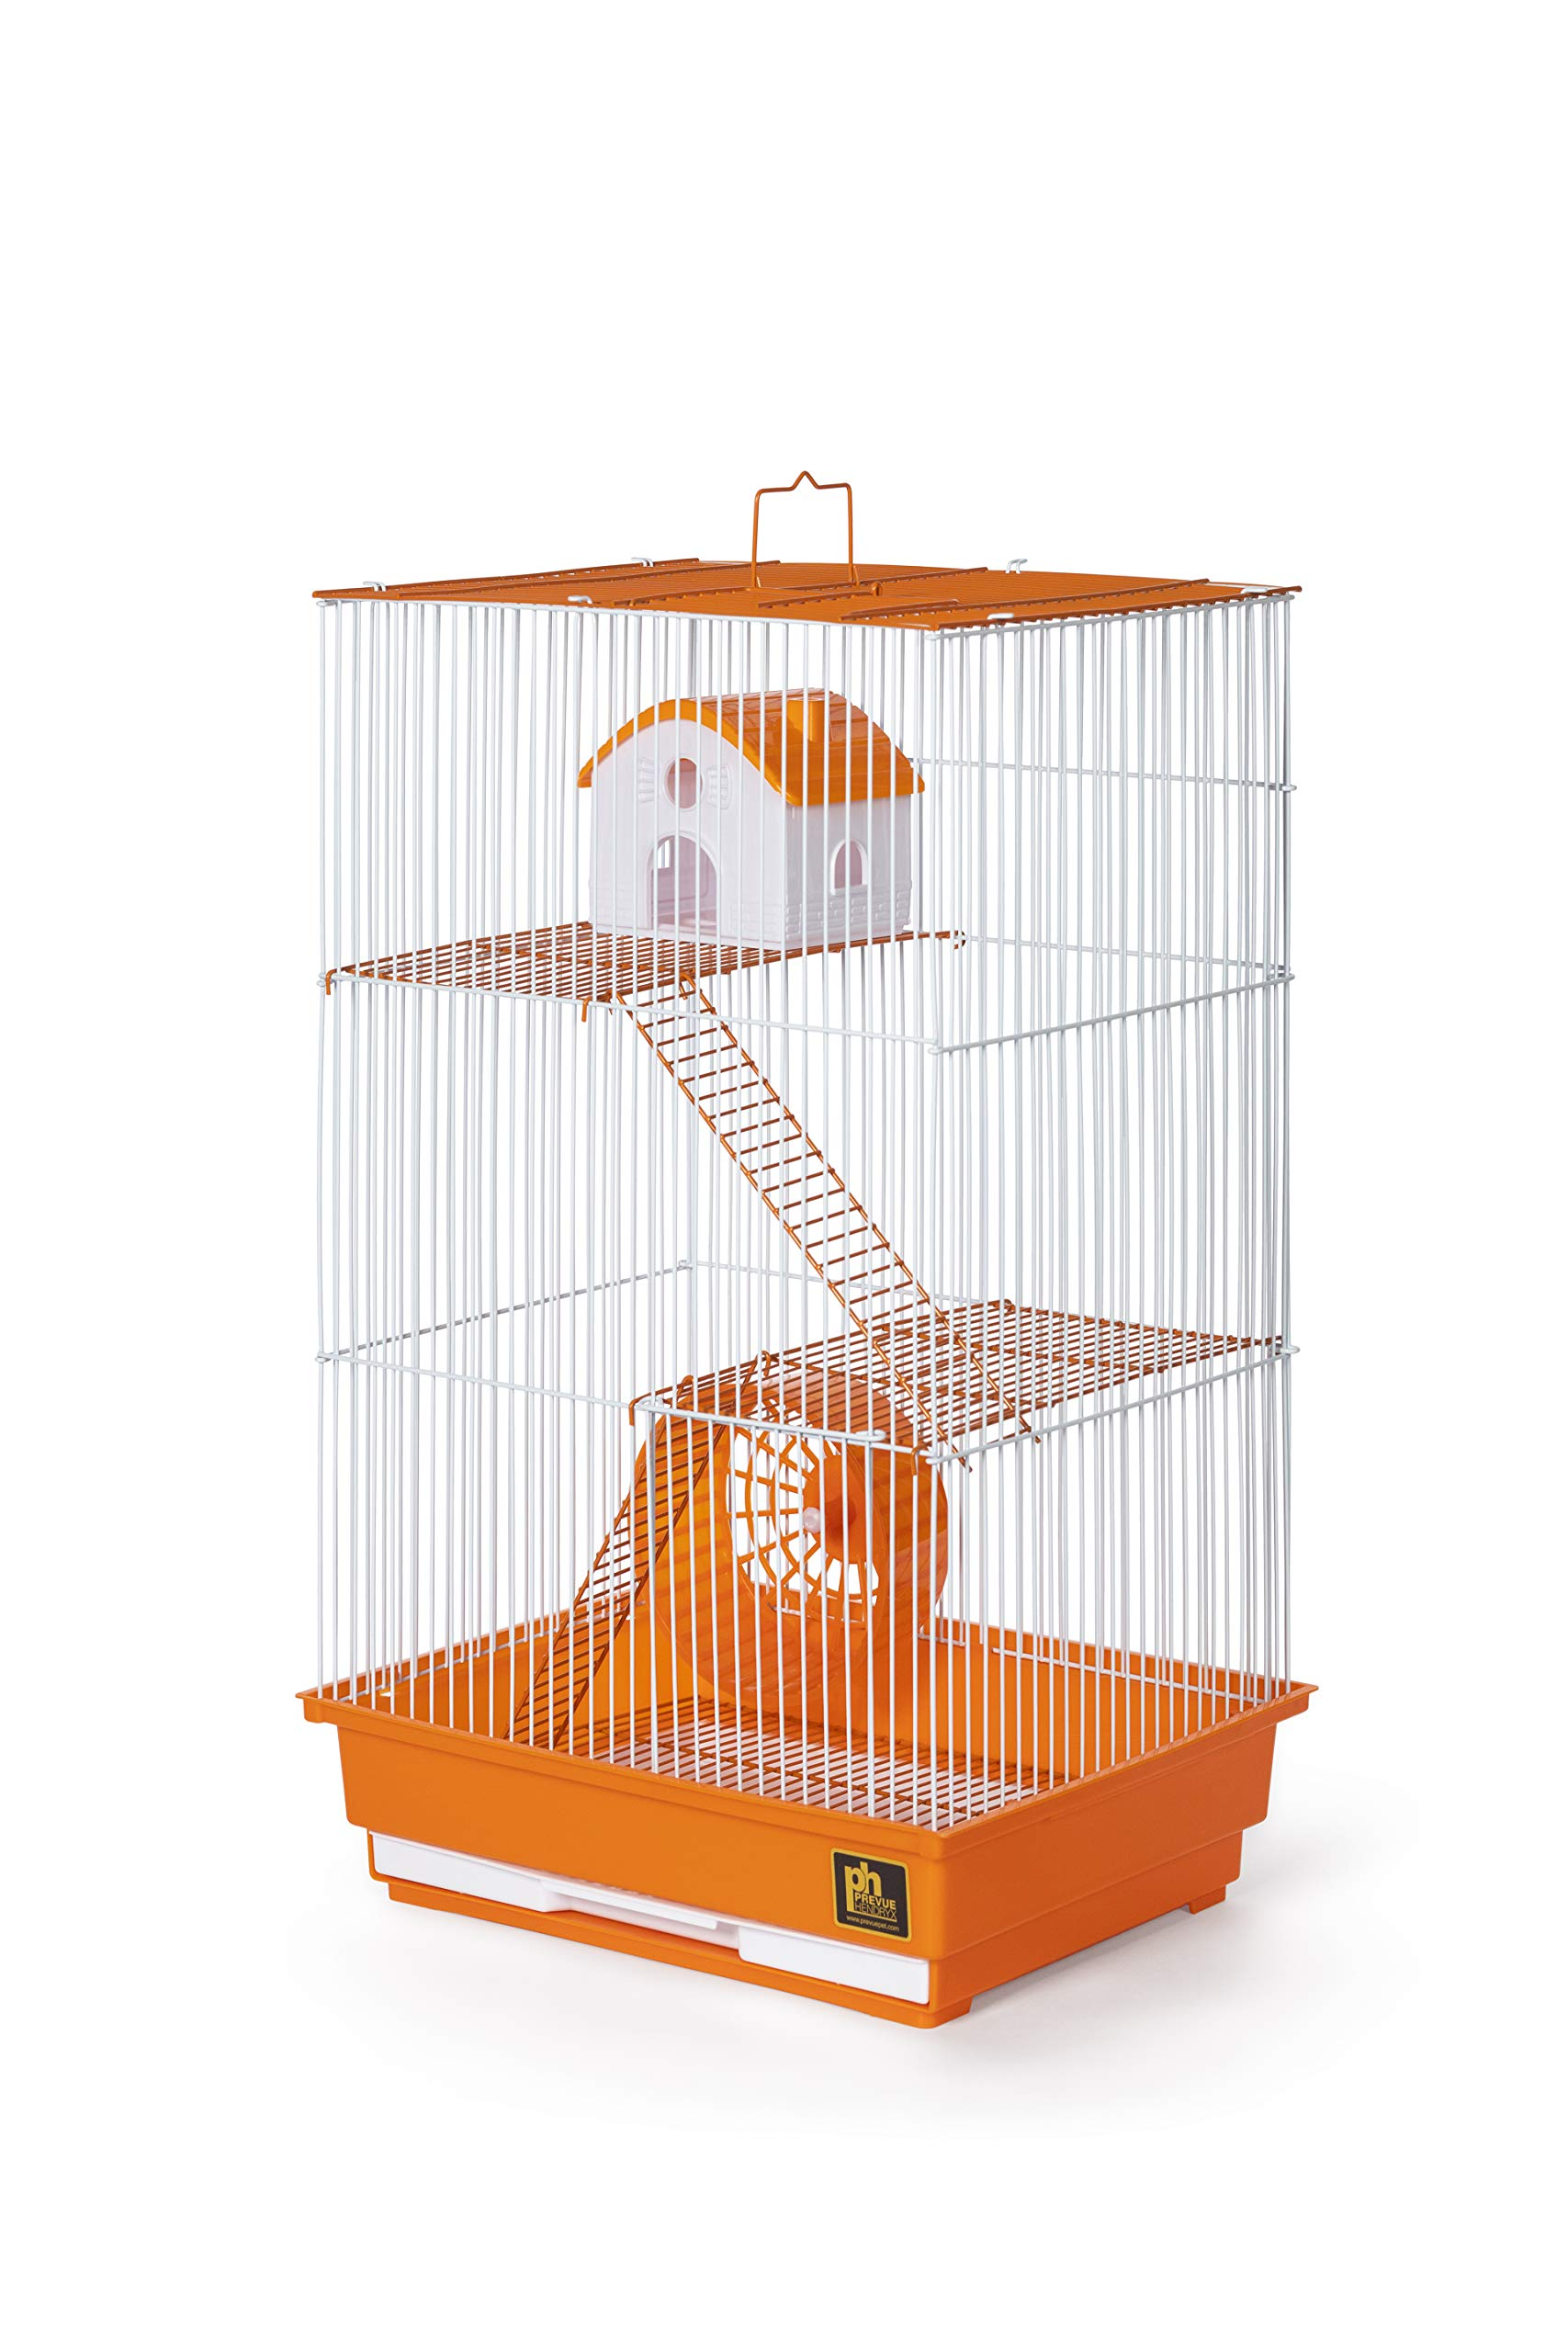 Prevue Pet Products Three-Story Hamster & Gerbil Cage Orange & White SP2030O by Prevue Pet Products (Image #3)